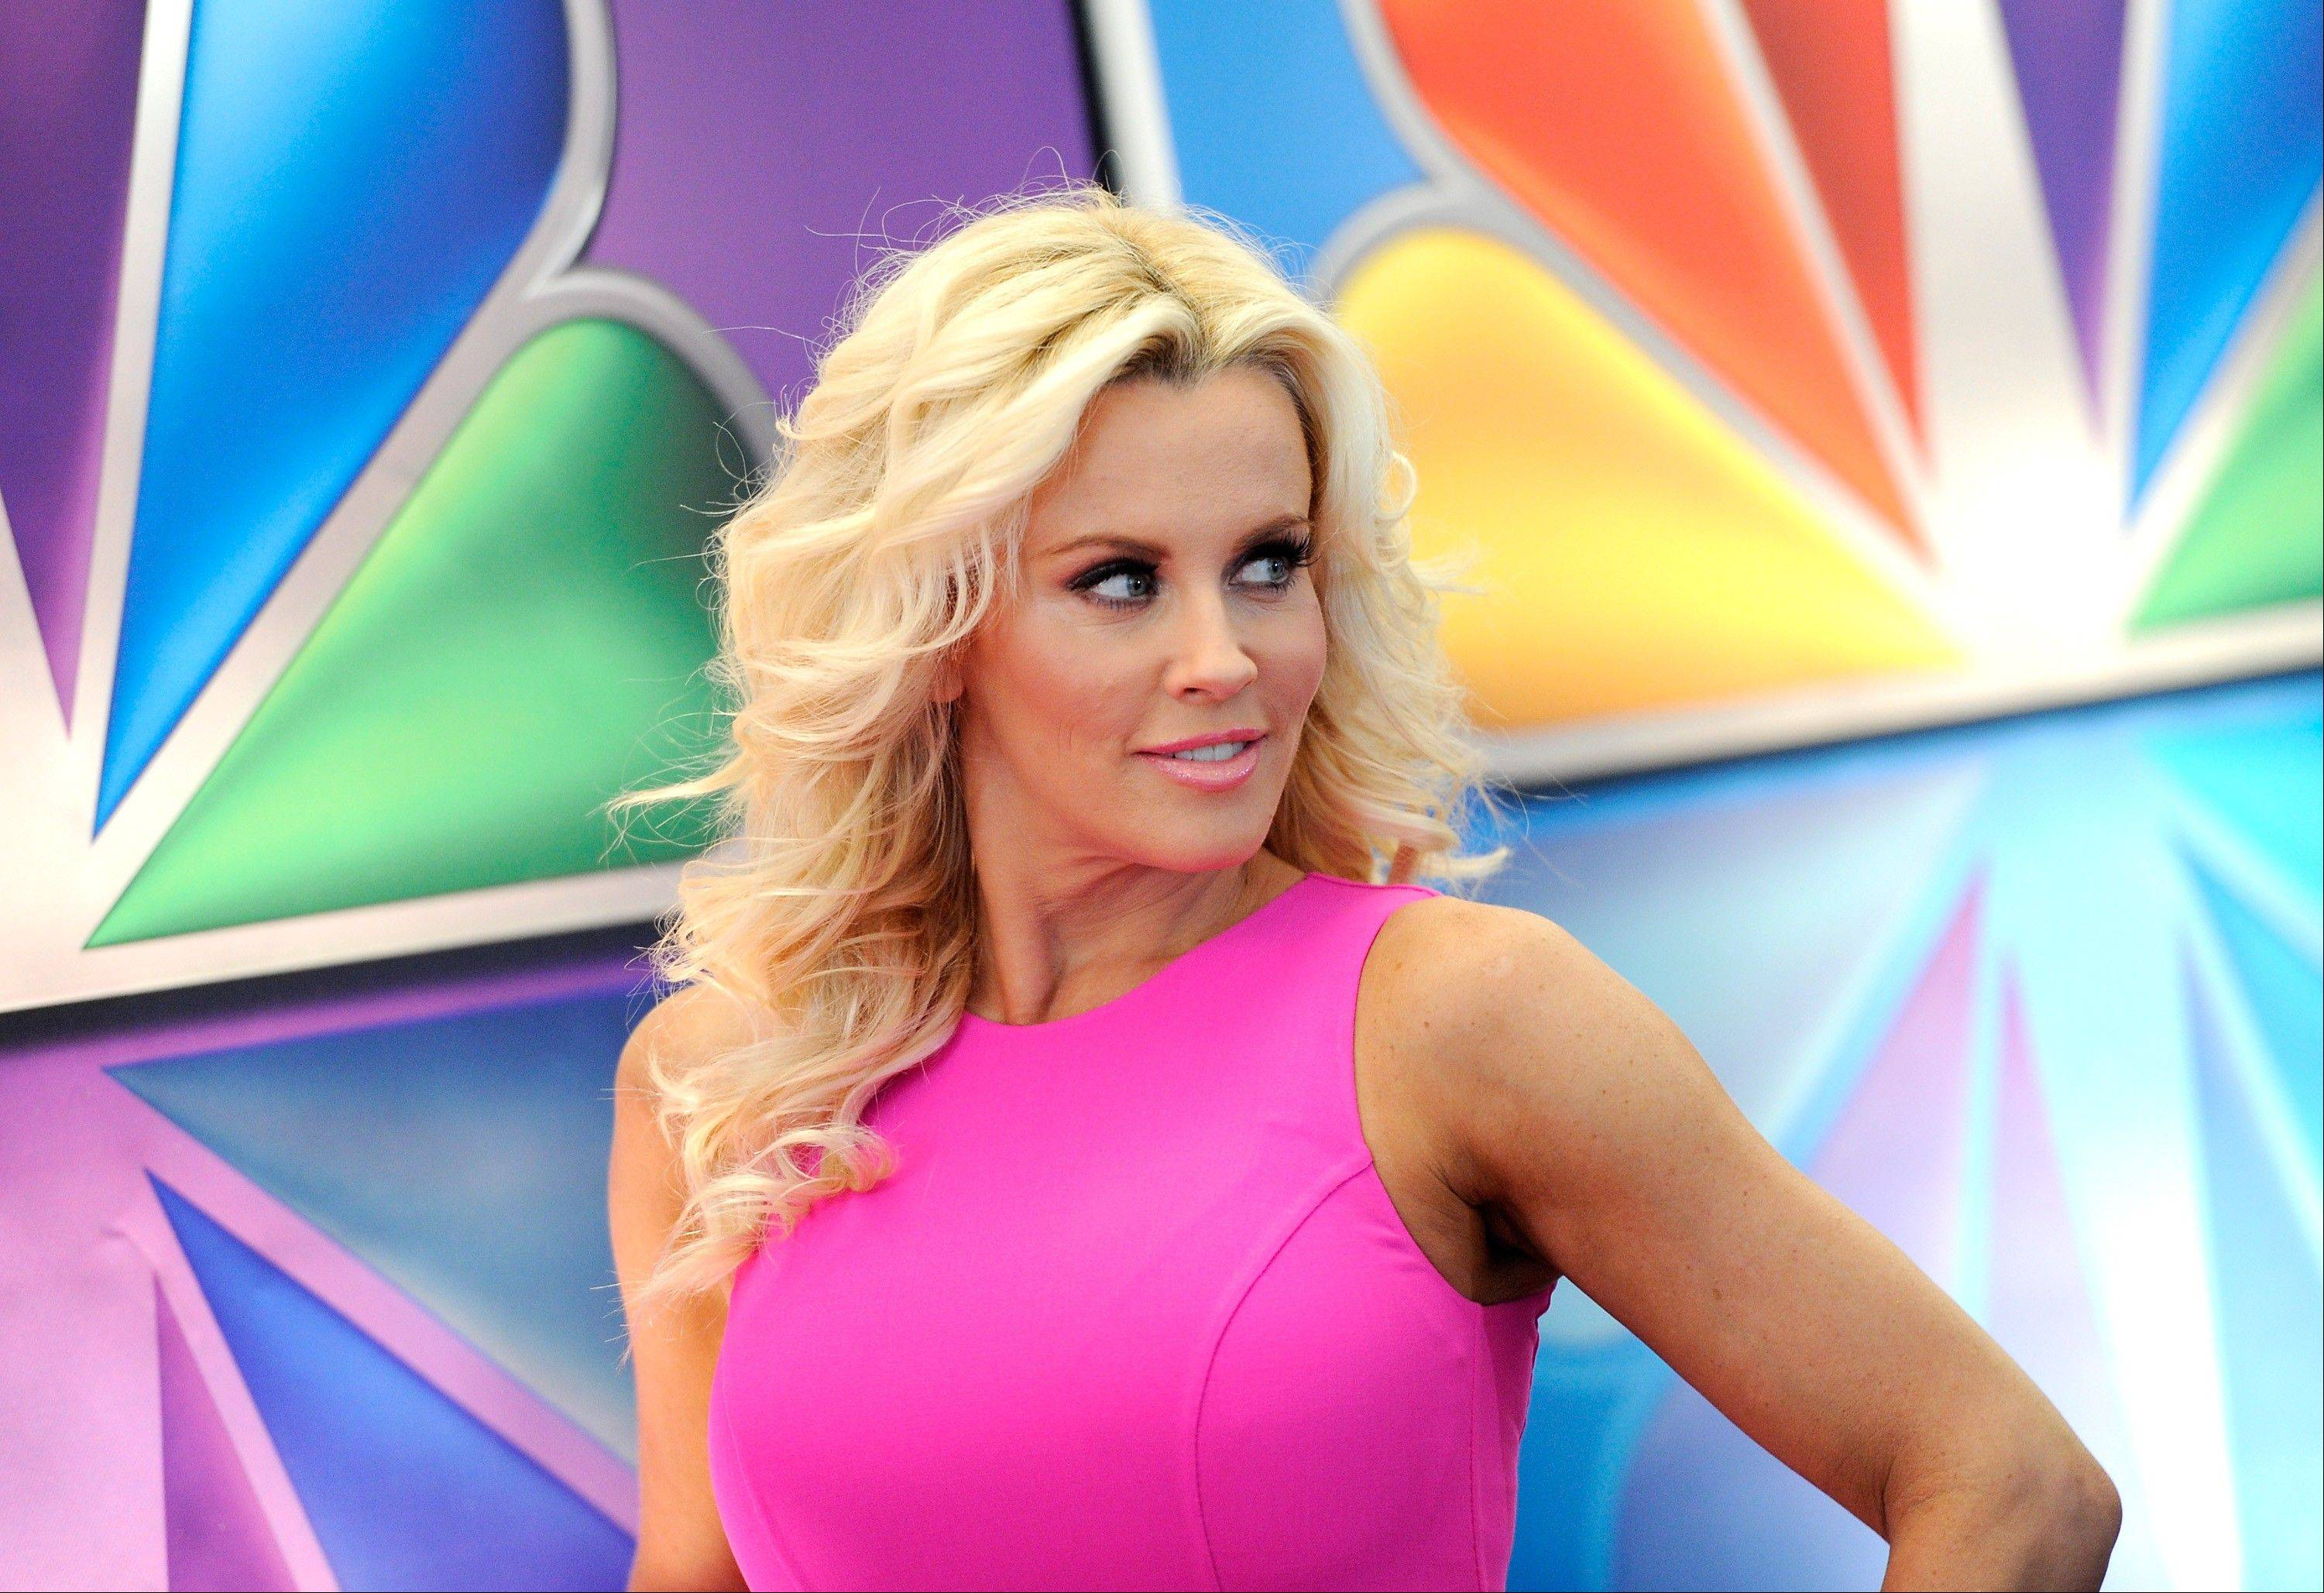 Actress Jenny McCarthy says she is no longer romantically involved with Chicago Bears linebacker Brian Urlacher.